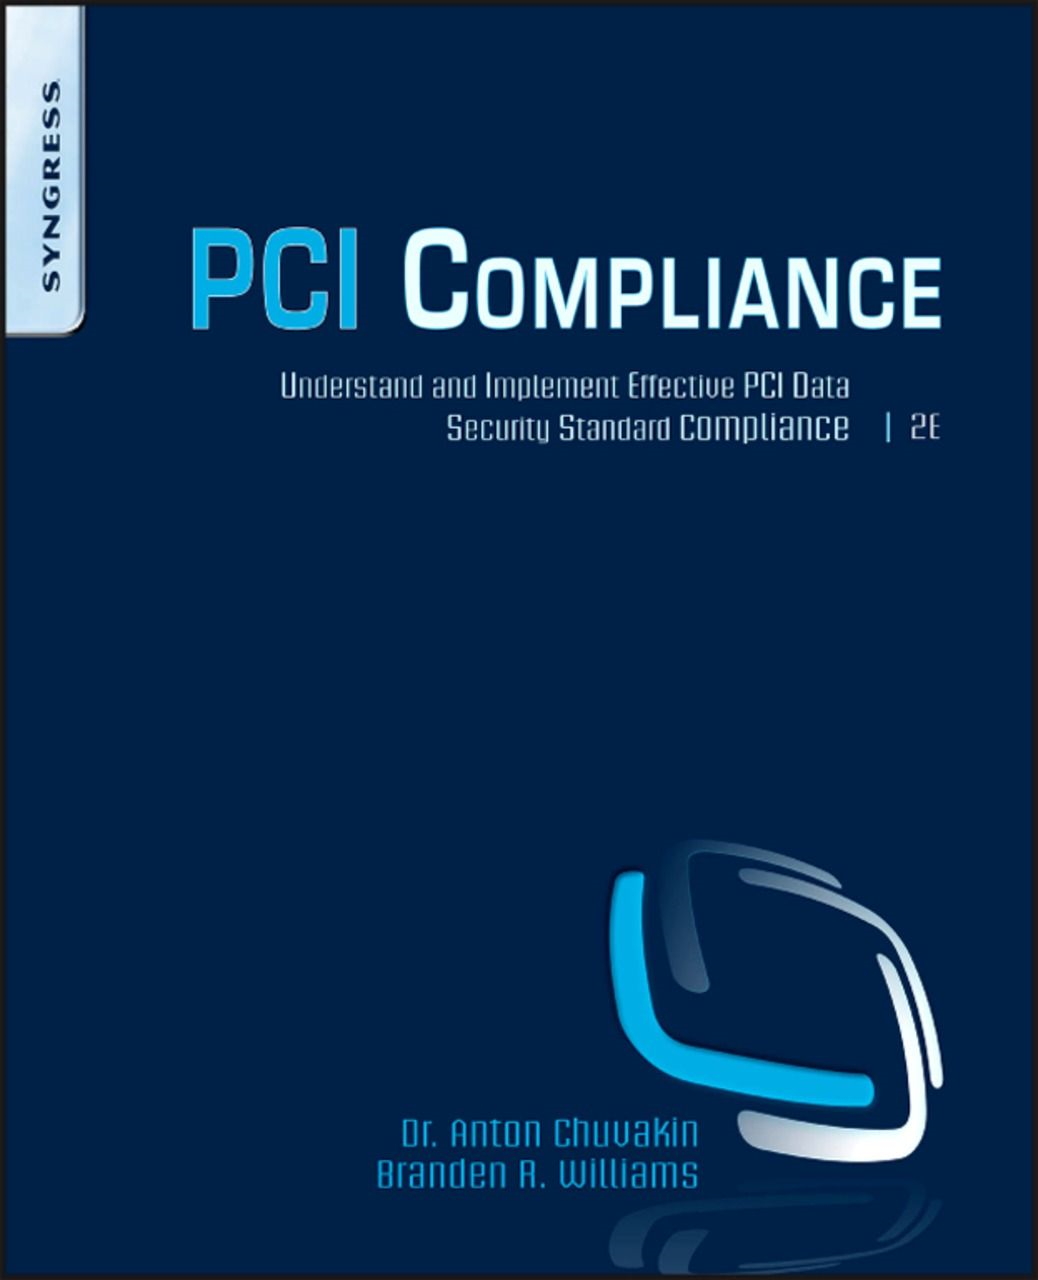 PCI Compliance Understand and Implement Effective PCI Data Security Standard Compliance